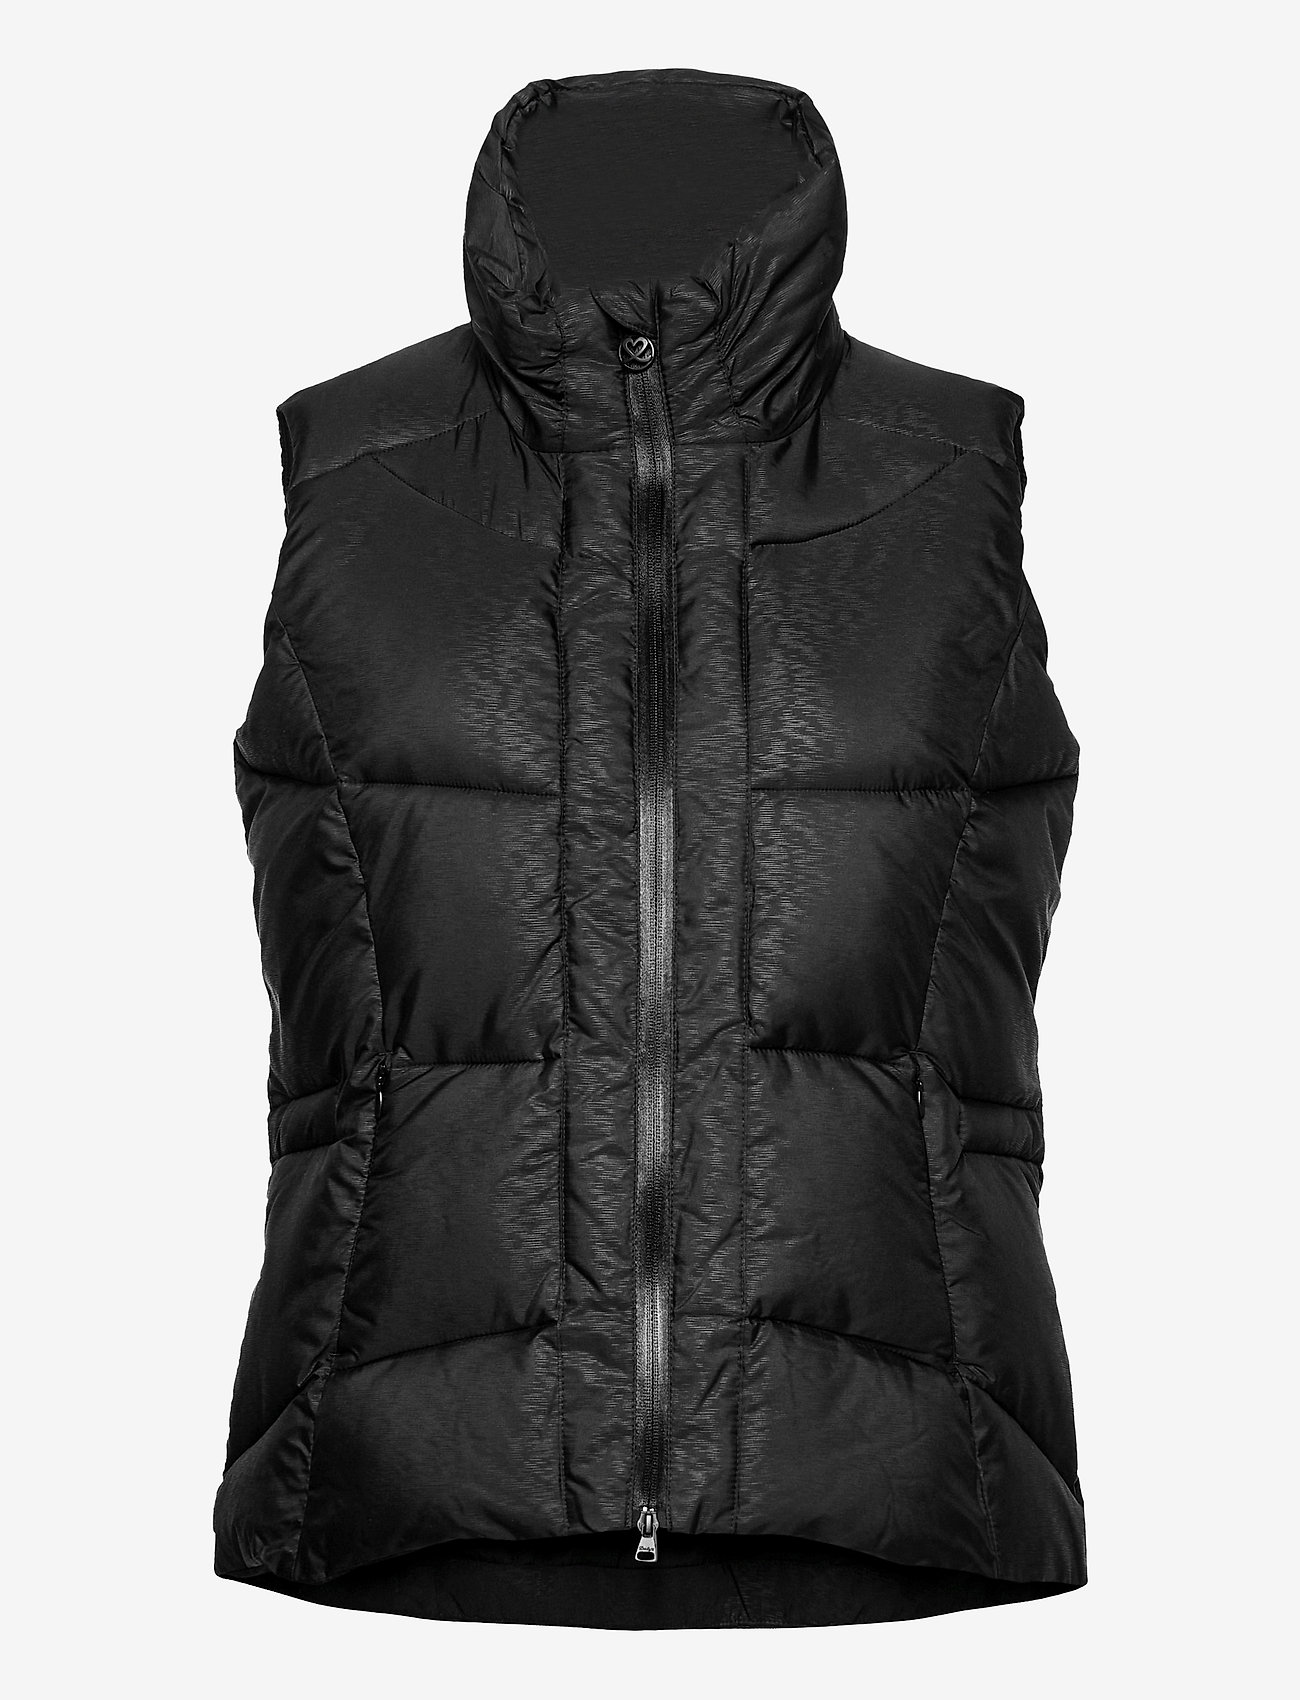 Daily Sports - QUINCY VEST - puffer vests - black - 0